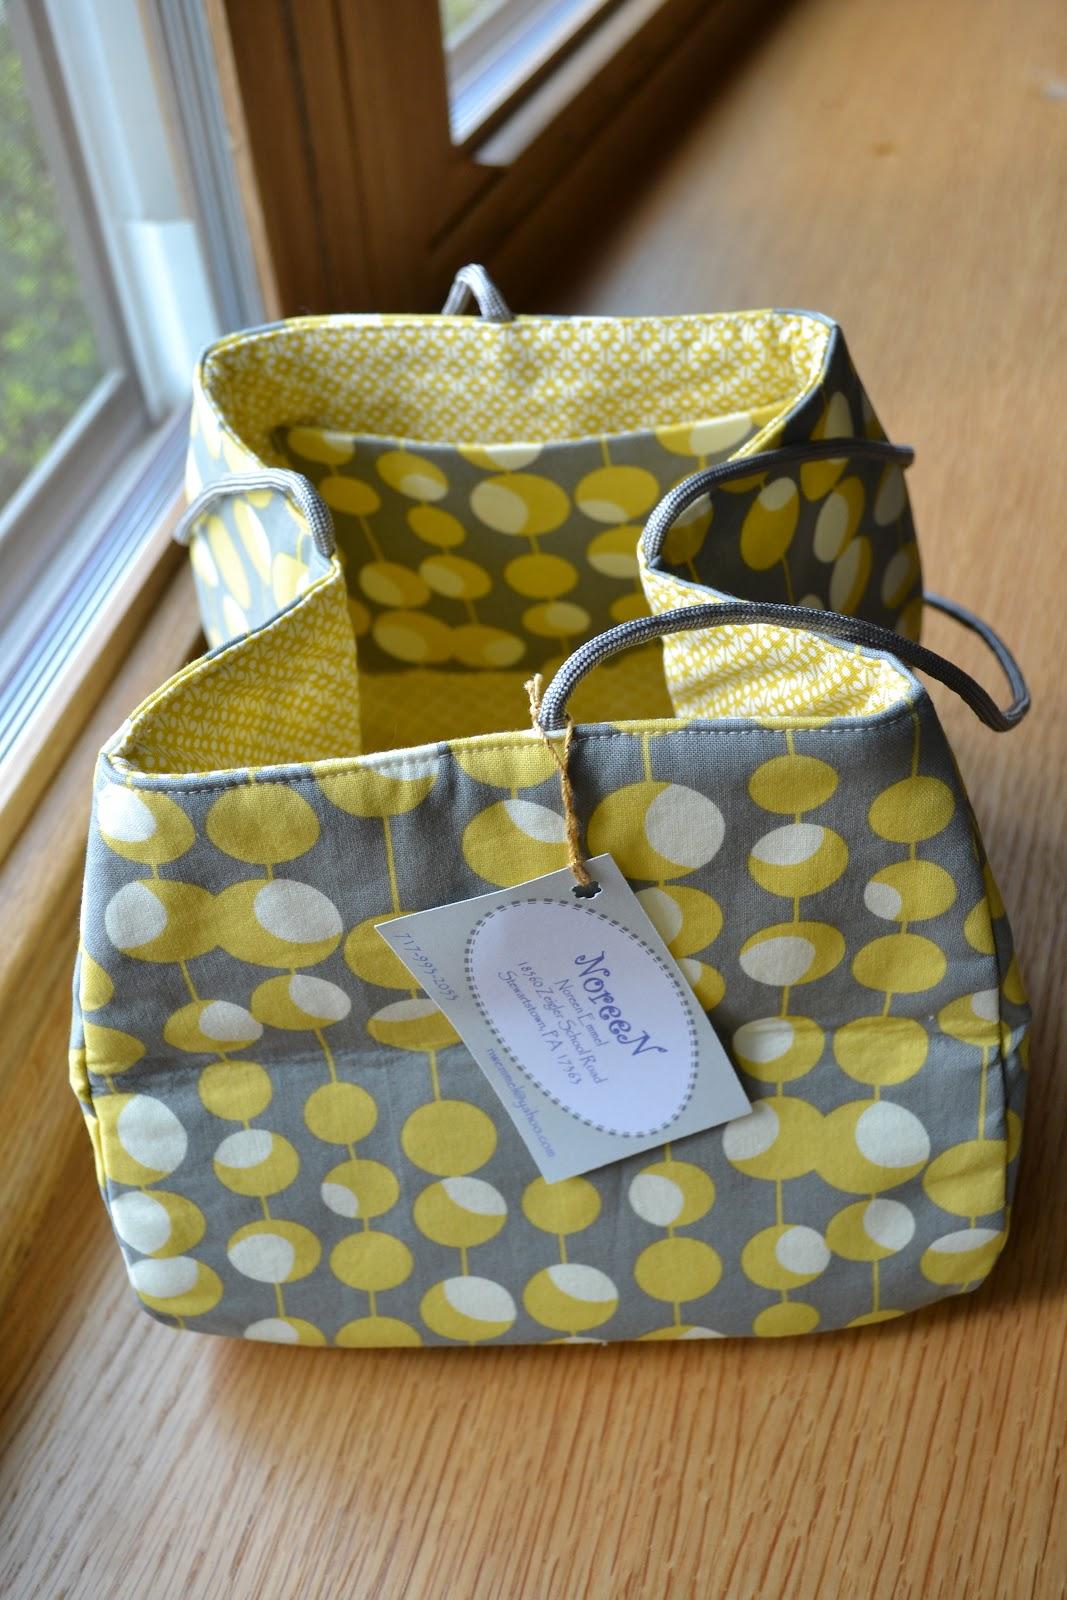 Knitting Bag Pattern To Sew : Susan B. Anderson: Apr 17, 2012